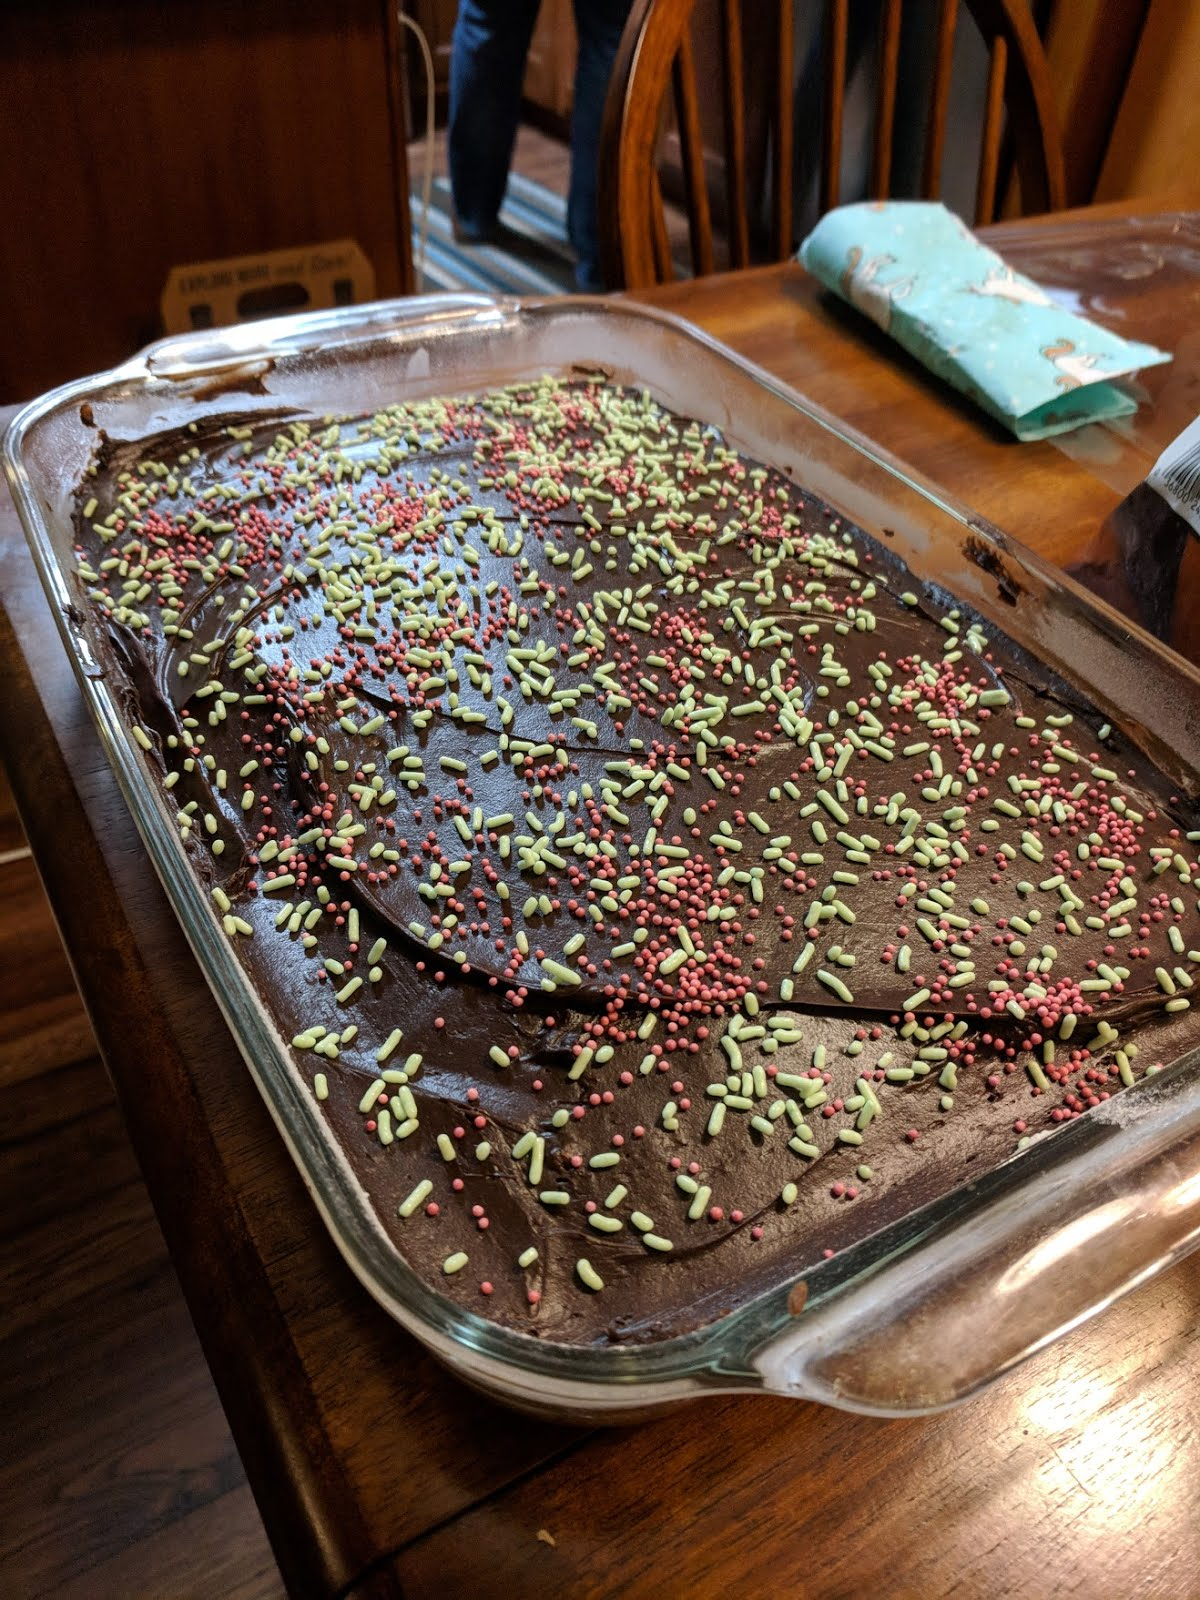 zucchini brownie cake frosting sprinkles jimmies birthday celebration